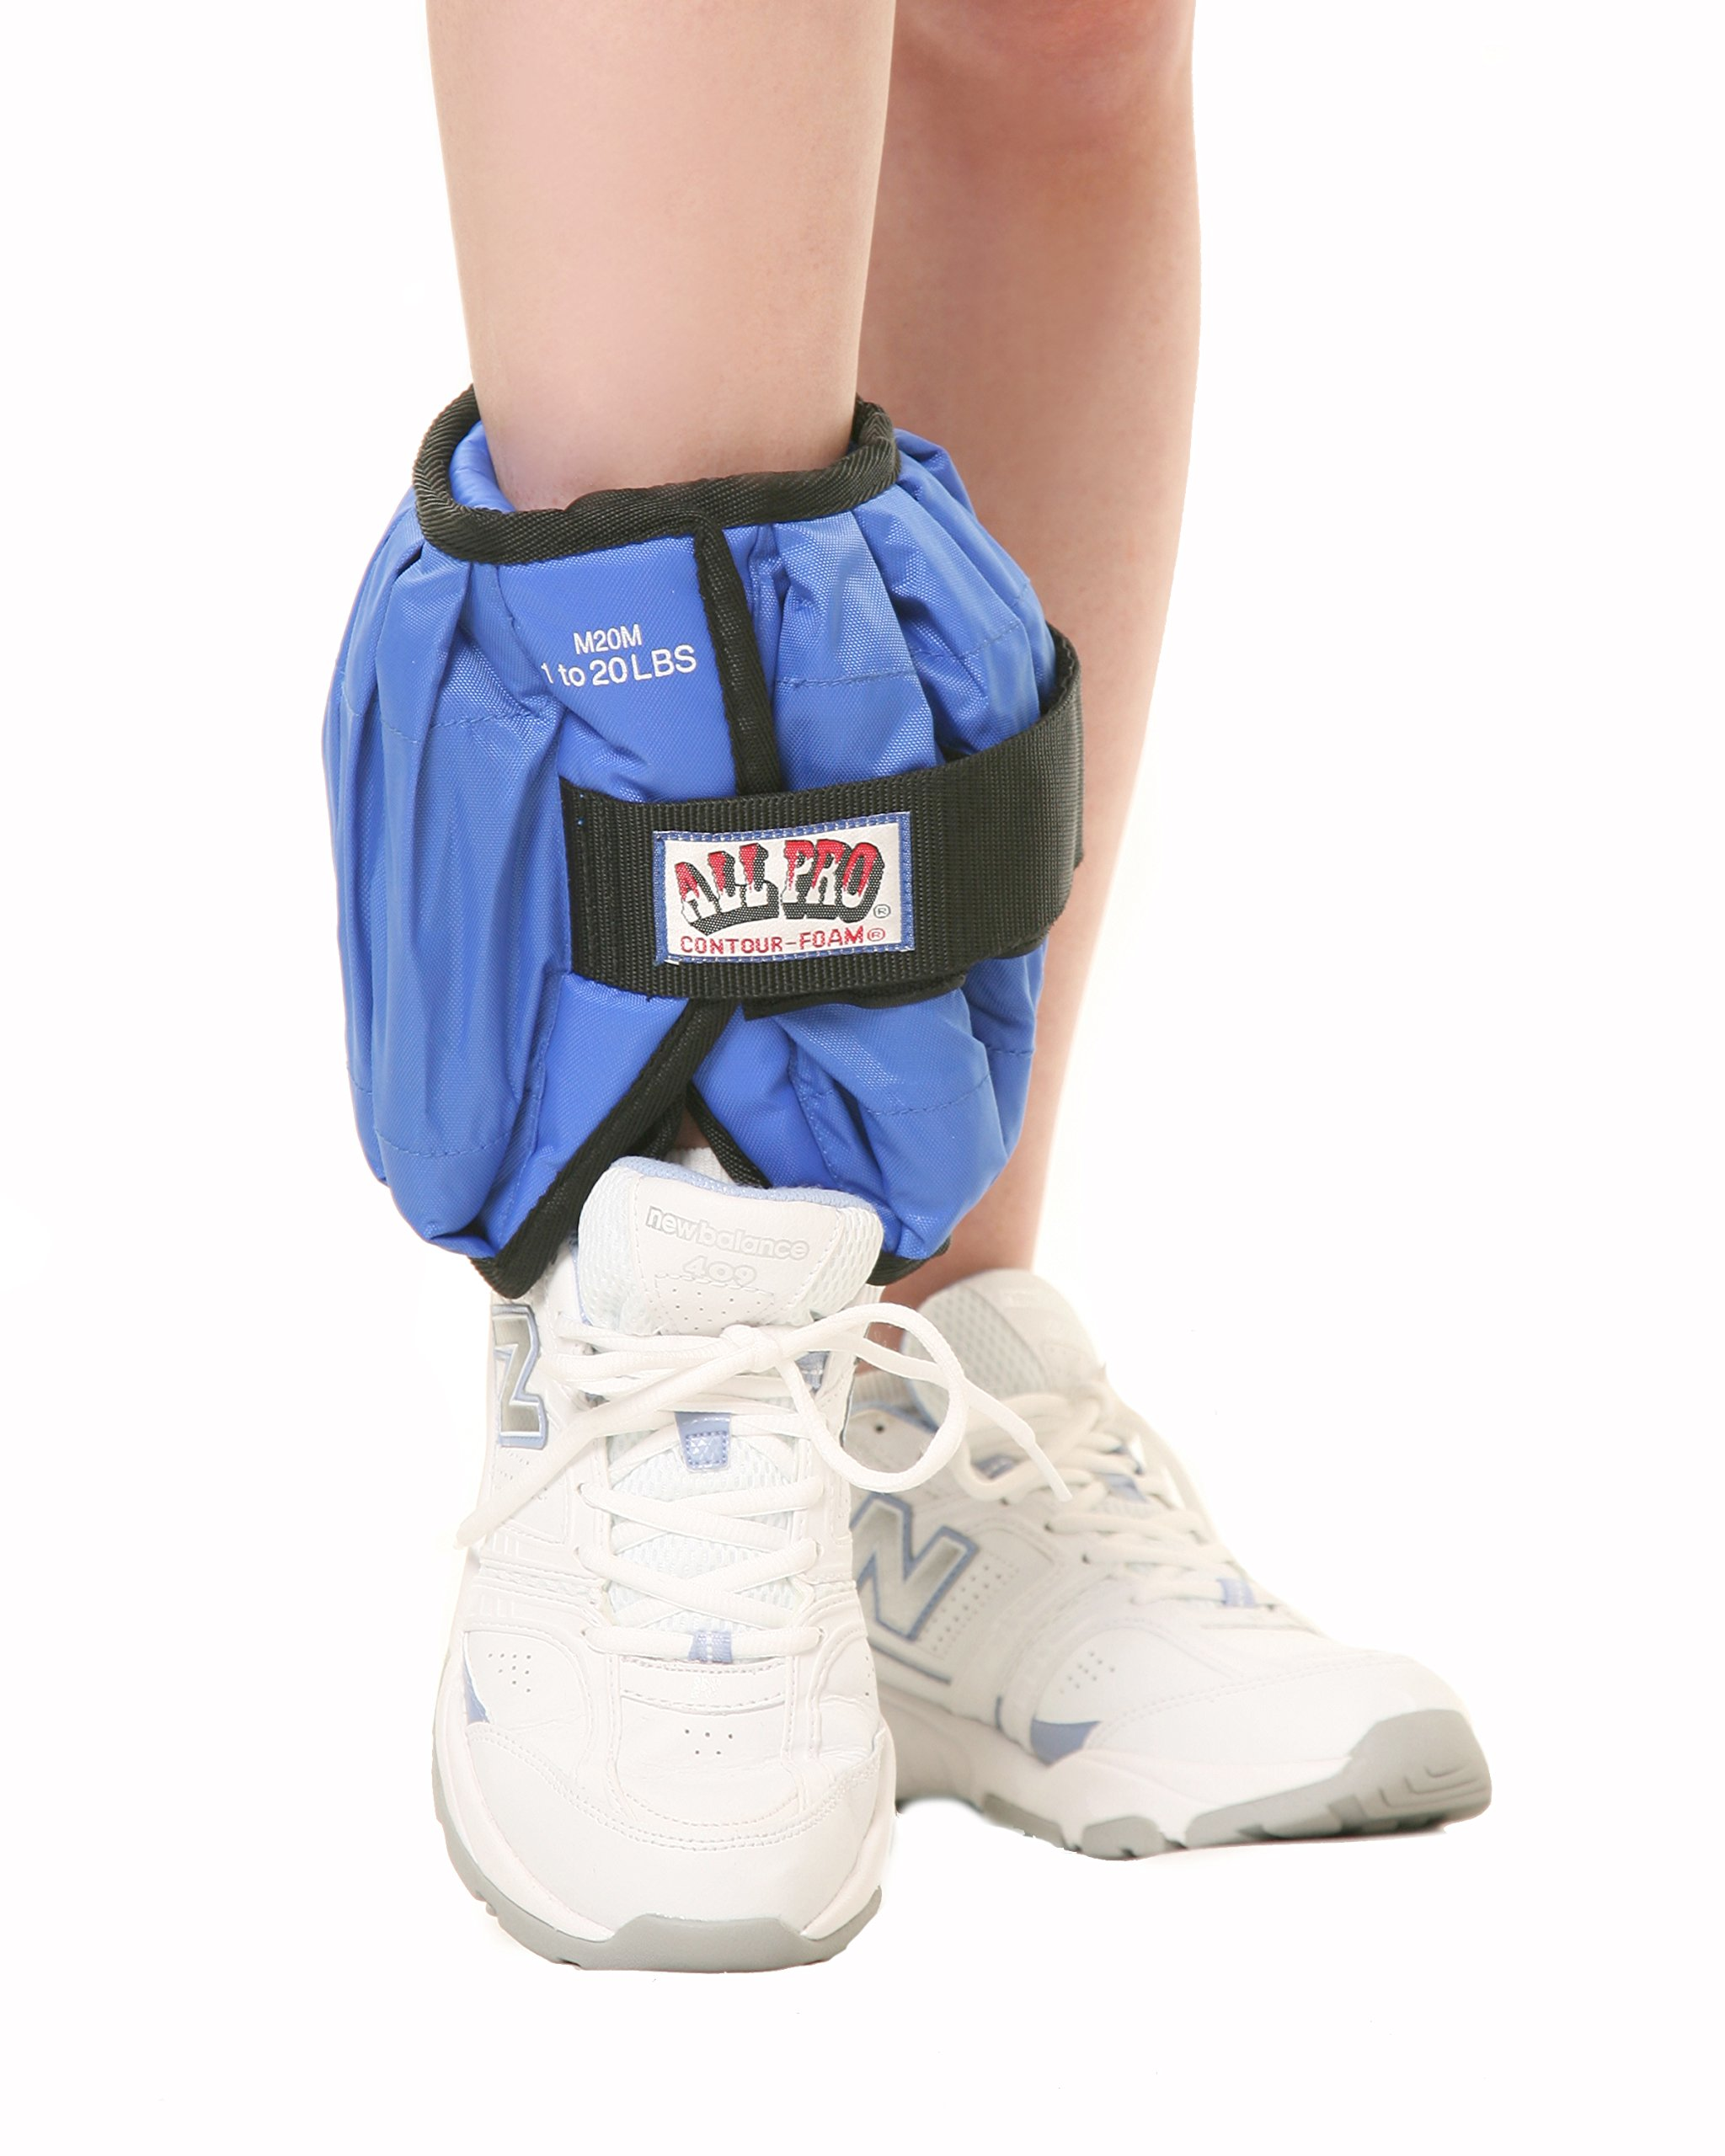 Sammons Preston -  All Pro Adjustable Therapeutic Ankle, Weights  20 lb. = 20, 1-lb. wts. by Preston Inc